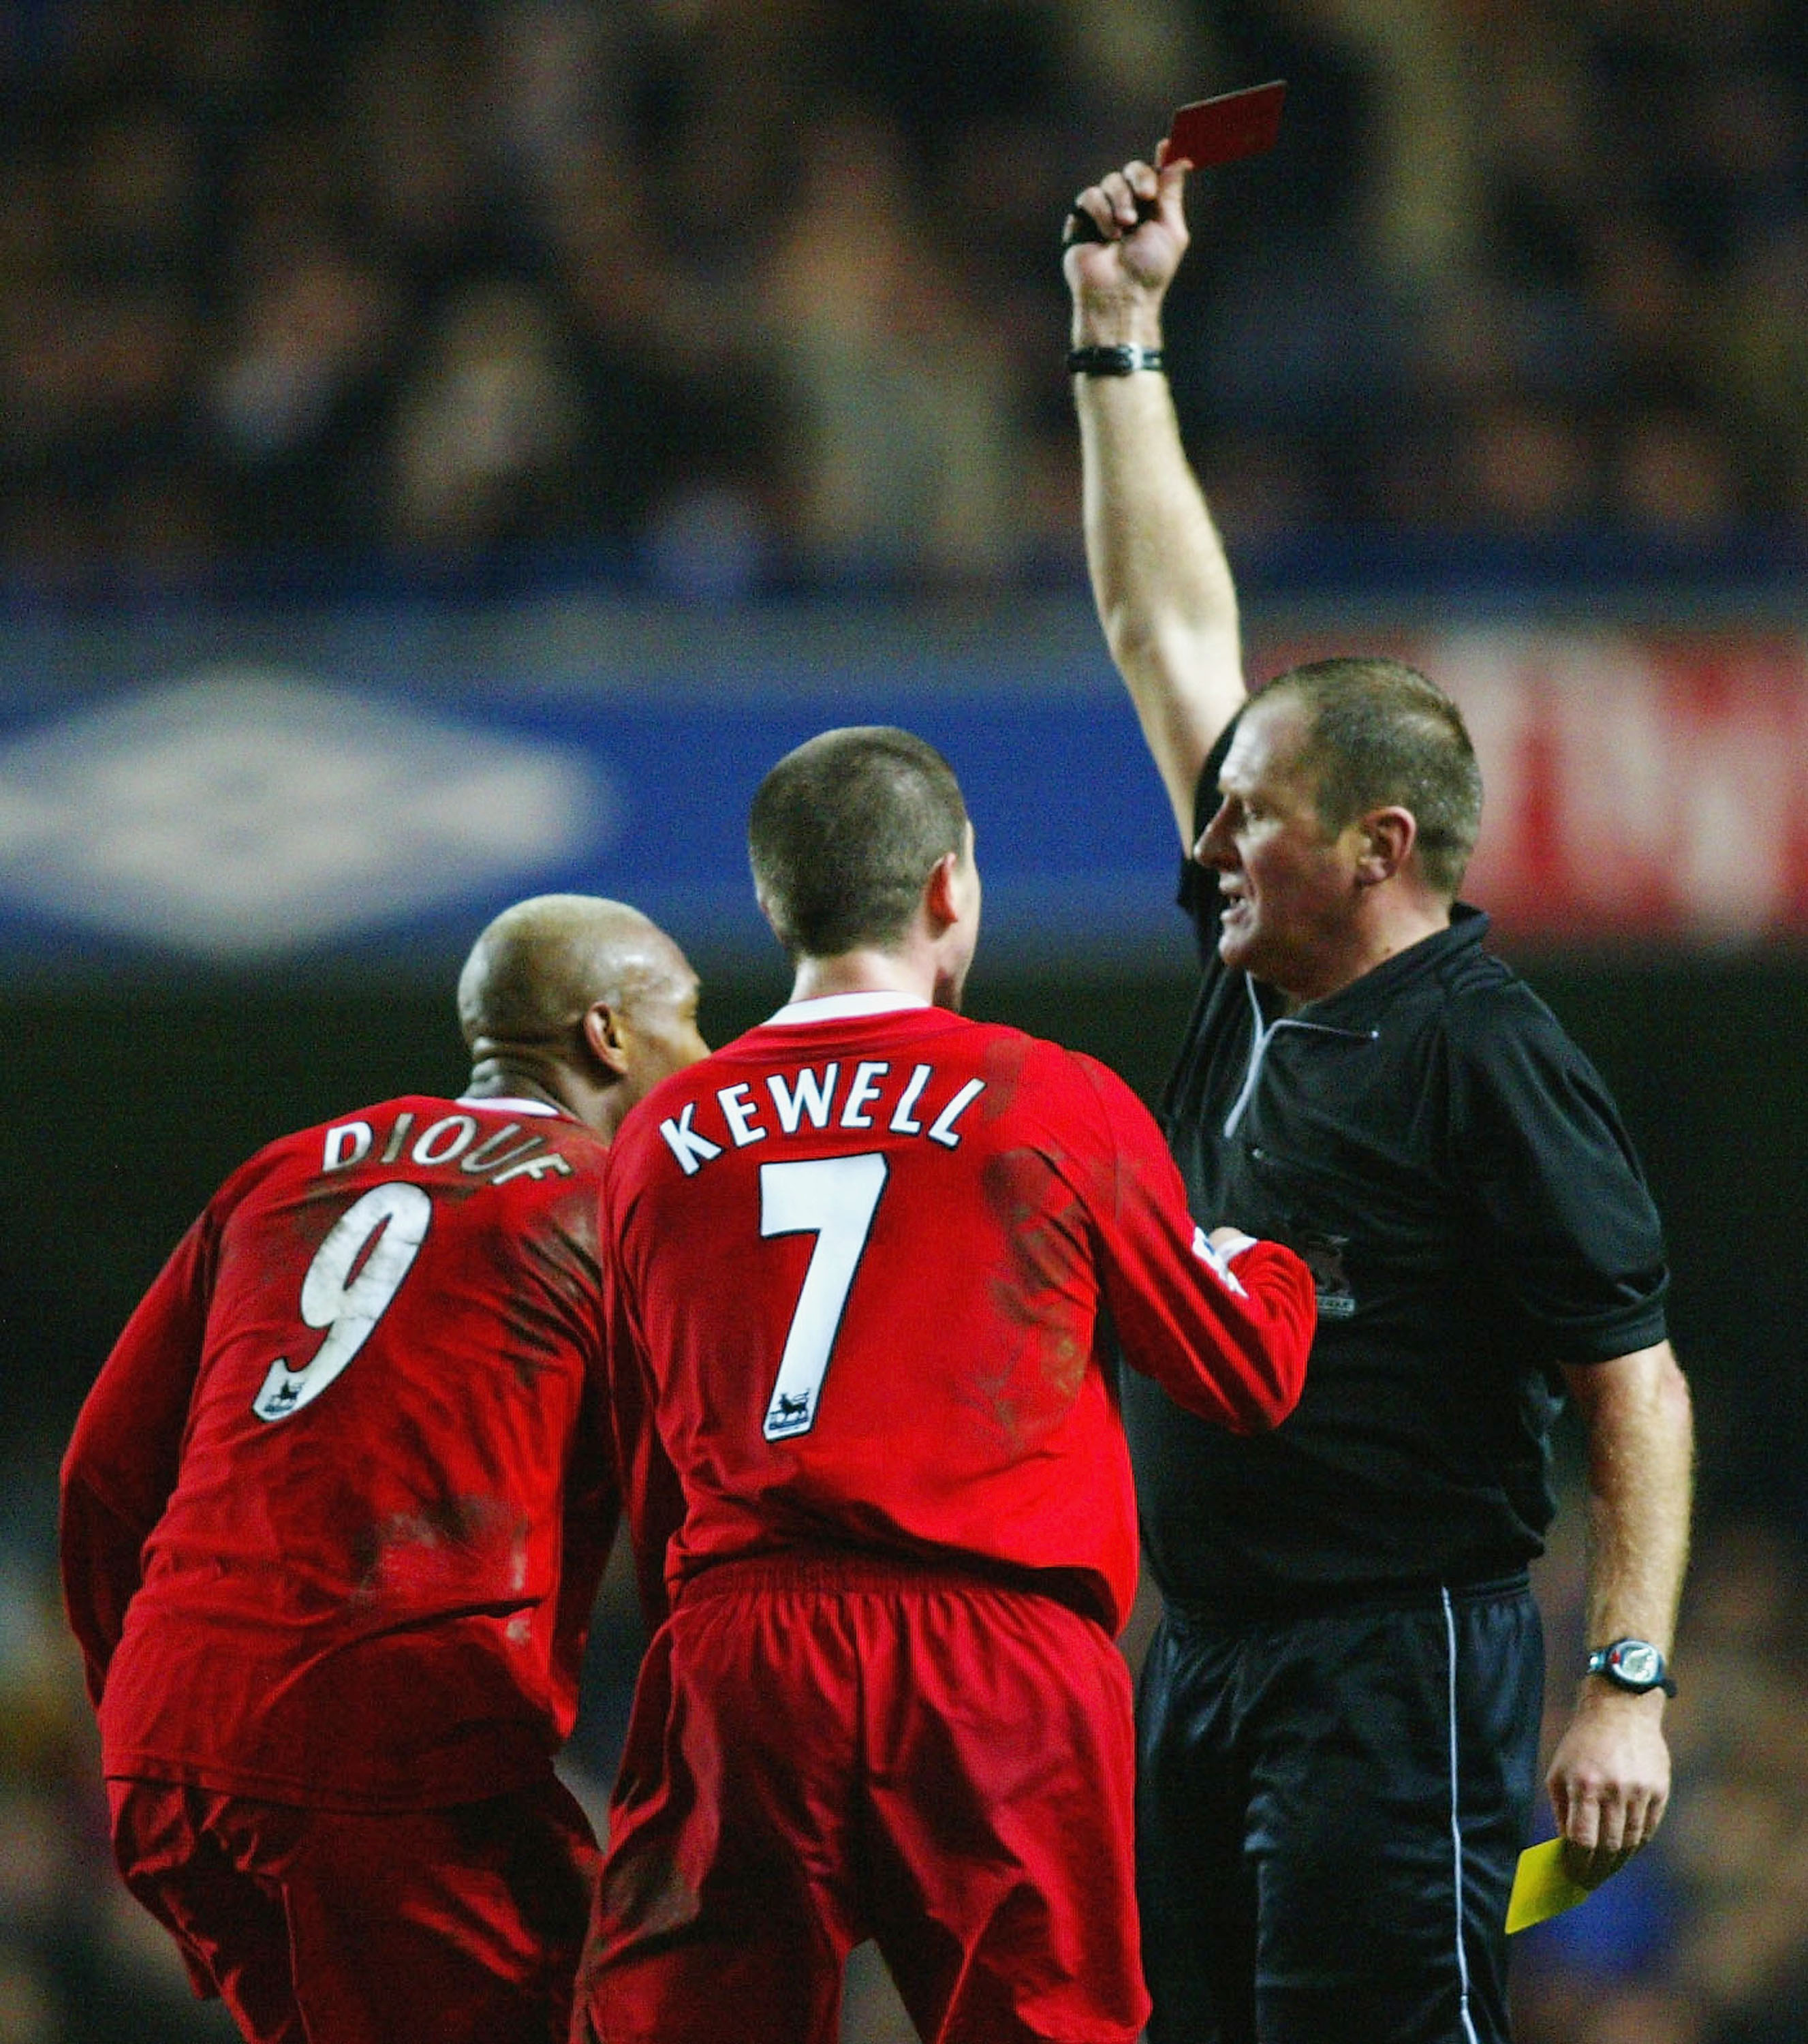 LONDON - JANUARY 7:  El Hadji Diouf of Liverpool appeals with the referee as he is sent off during the FA Barclaycard Premiership match between Chelsea and Liverpool at Stamford Bridge on January 7, 2004 in London.  (Photo by Ben Radford/Getty Images)